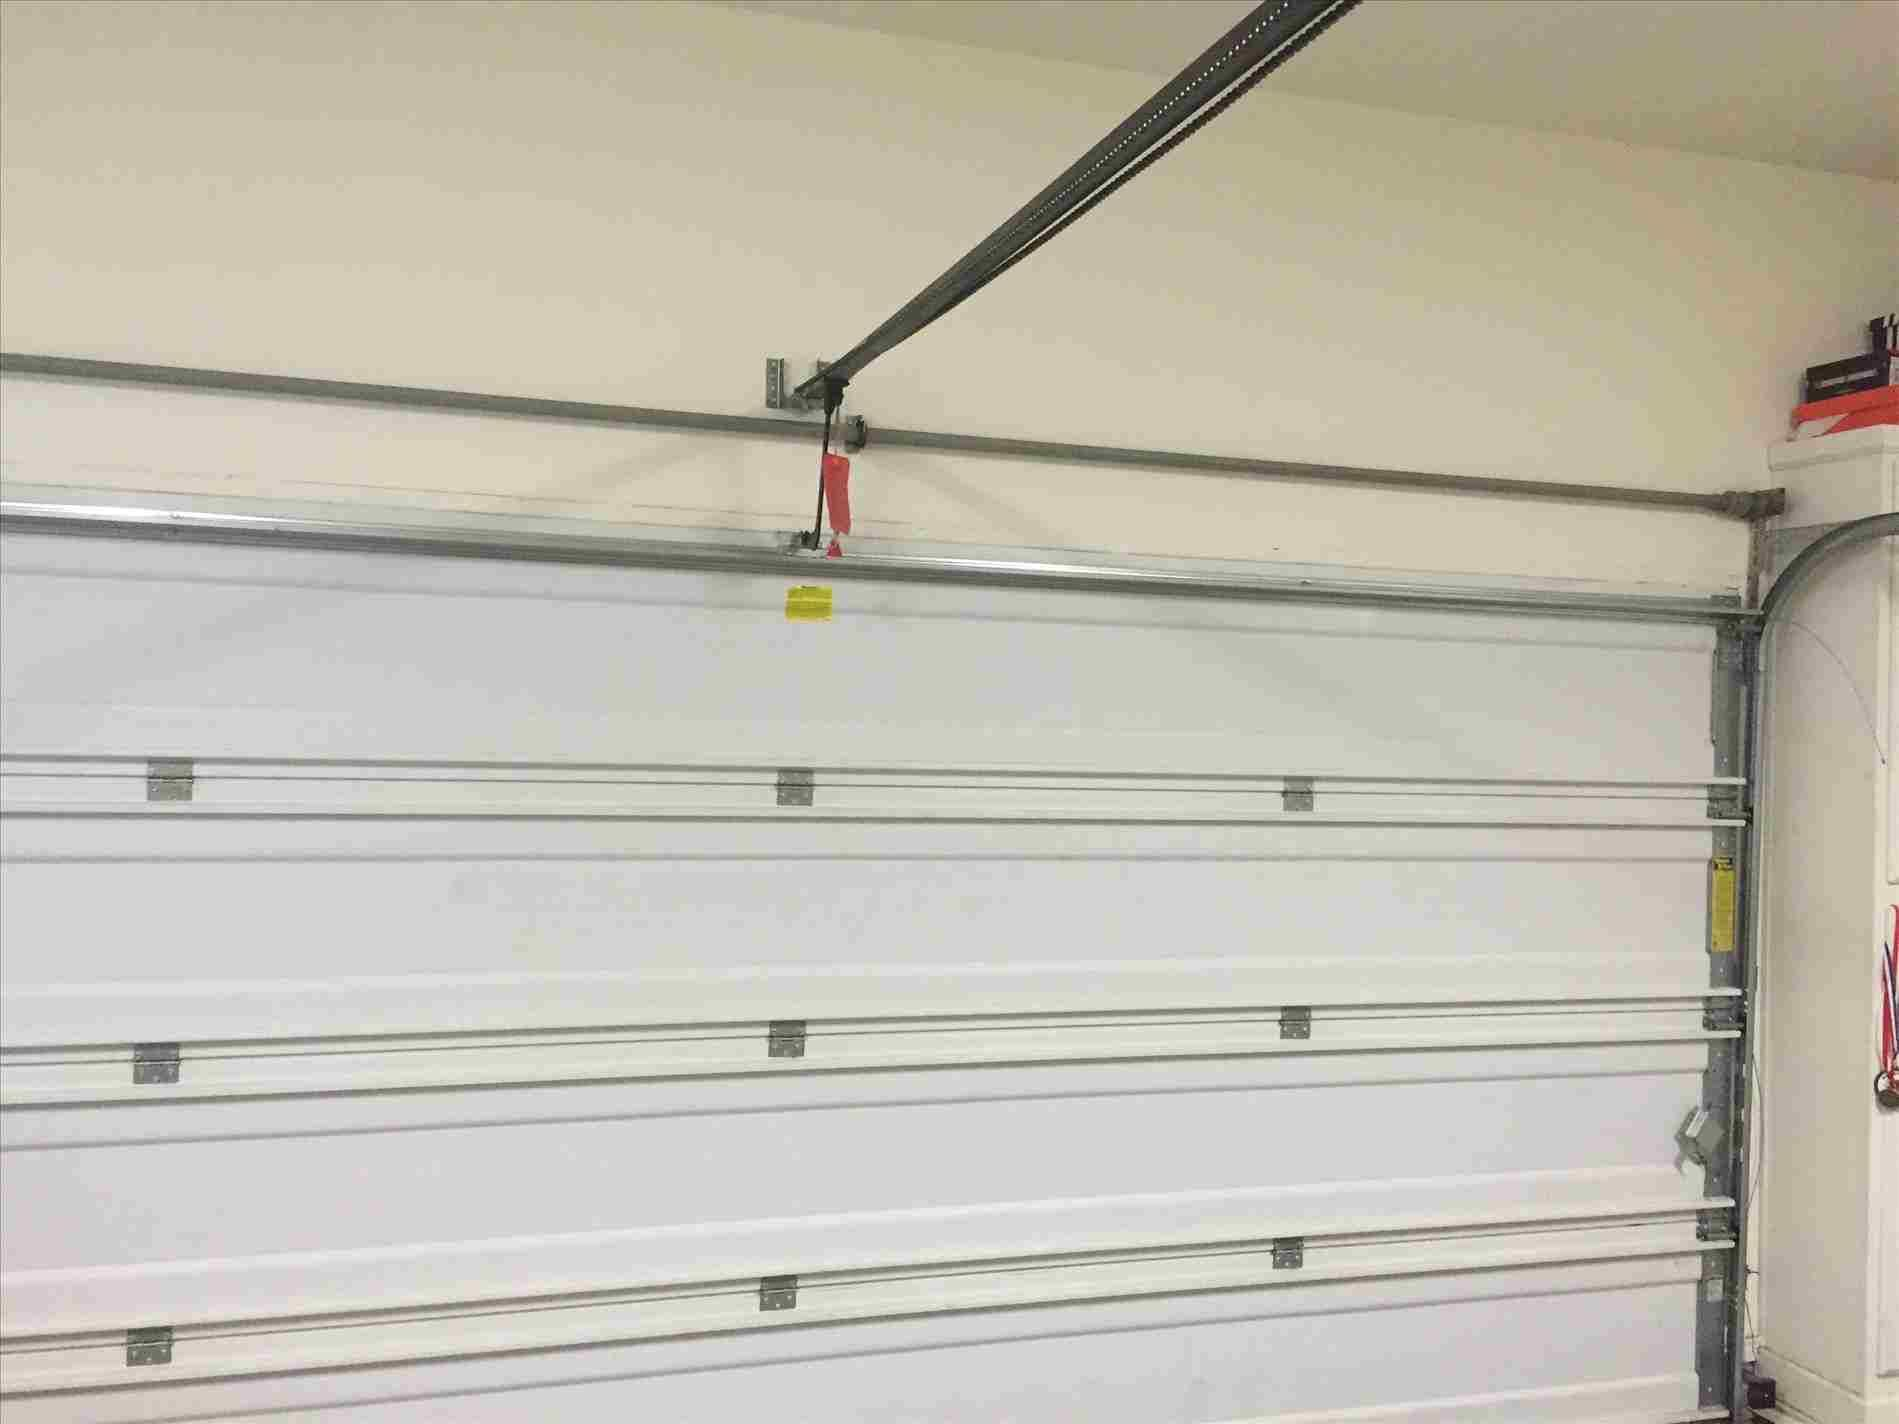 Wayne Dalton Garage Door Repair Uncategorized Wayne Dalton Taupe Garage Doors Stunning Wayne Garage Door Springs Garage Door Installation Broken Garage Door